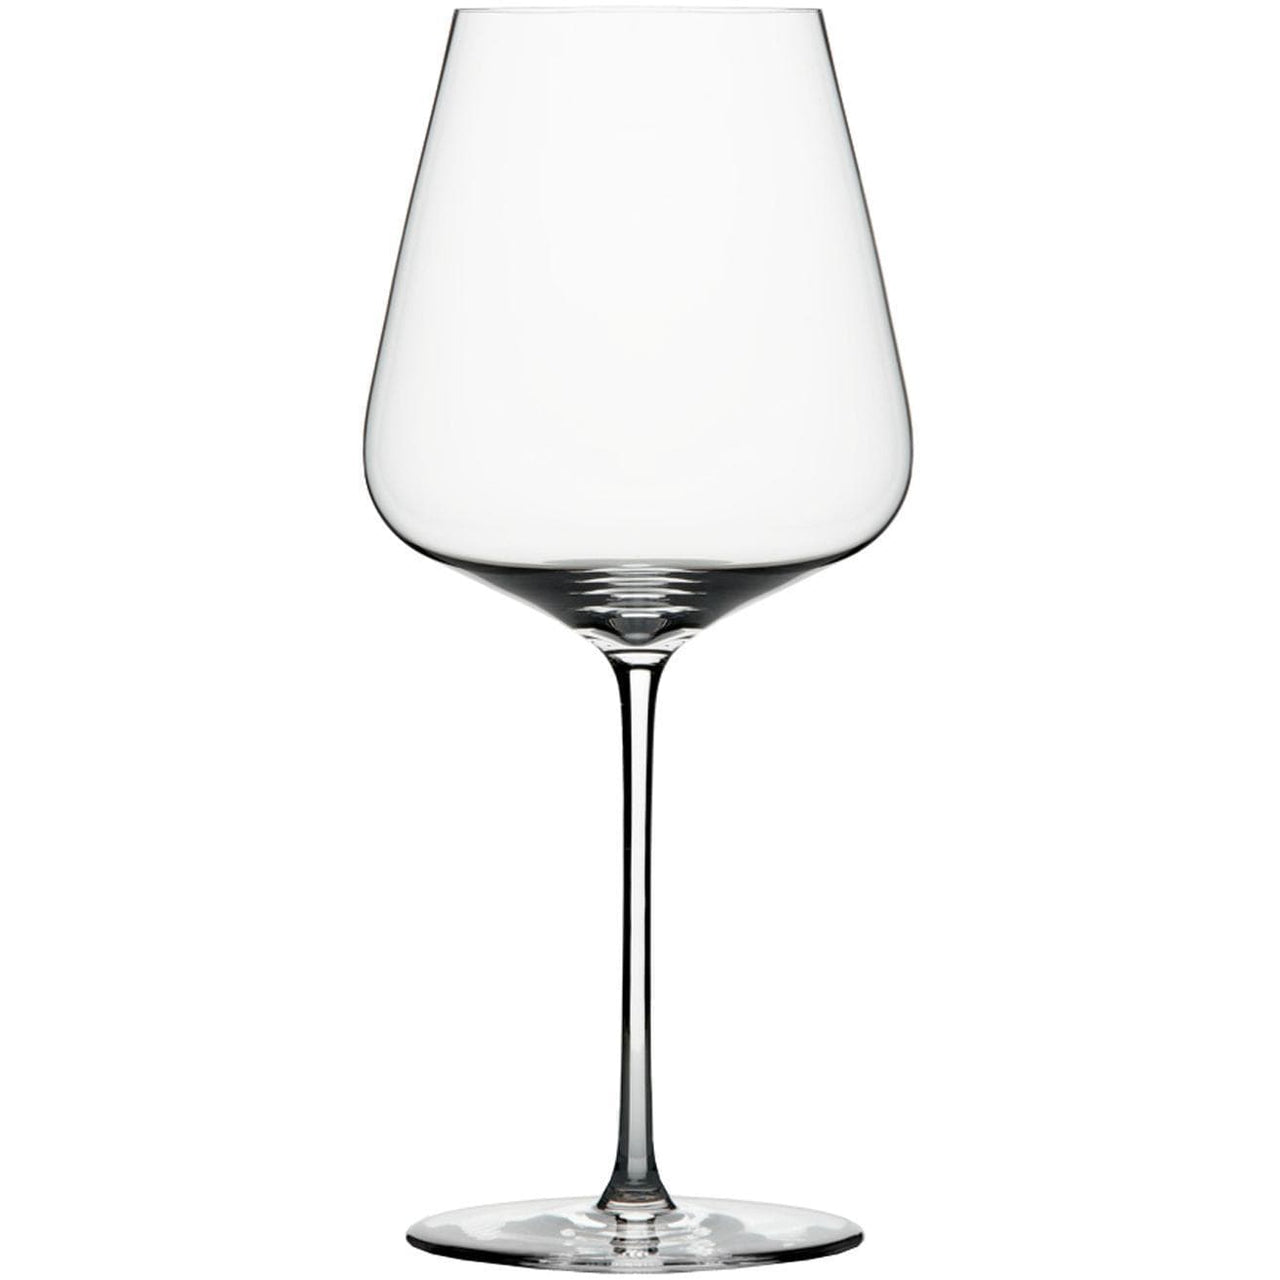 Zalto Drinkware Hand-Blown Bordeaux Glasses